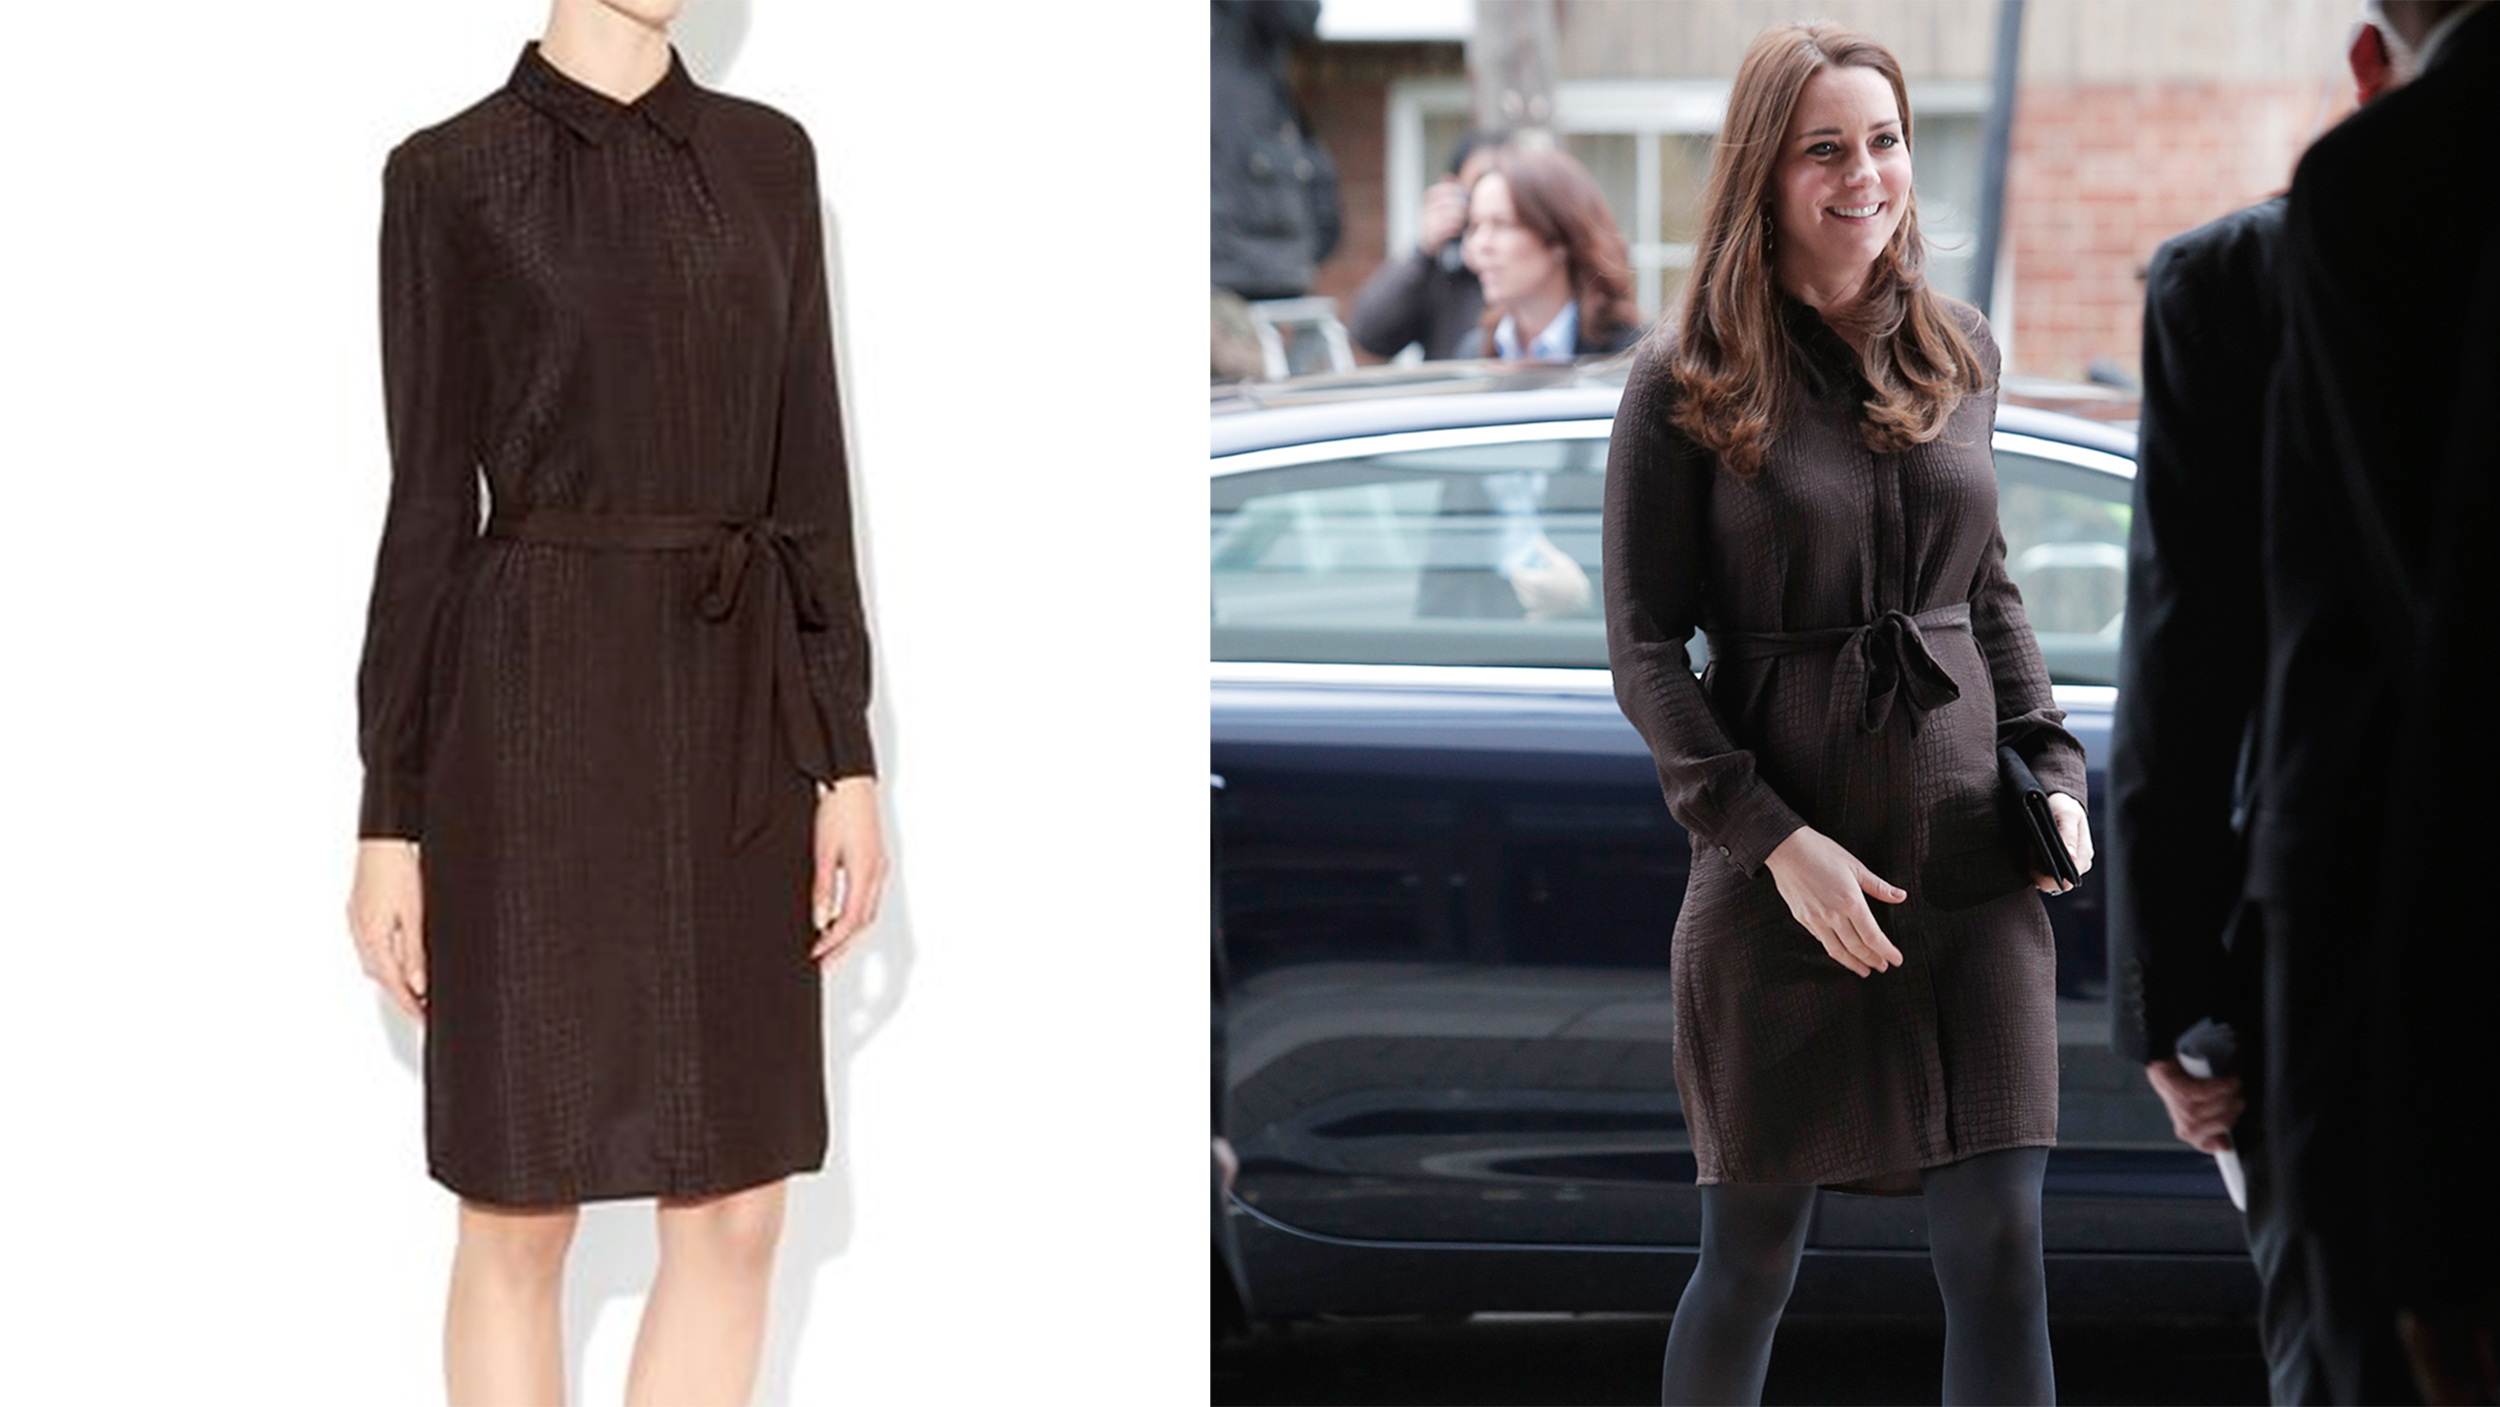 c3944afcd0f Kate Middleton displays baby bump in stylish brown shirt dress